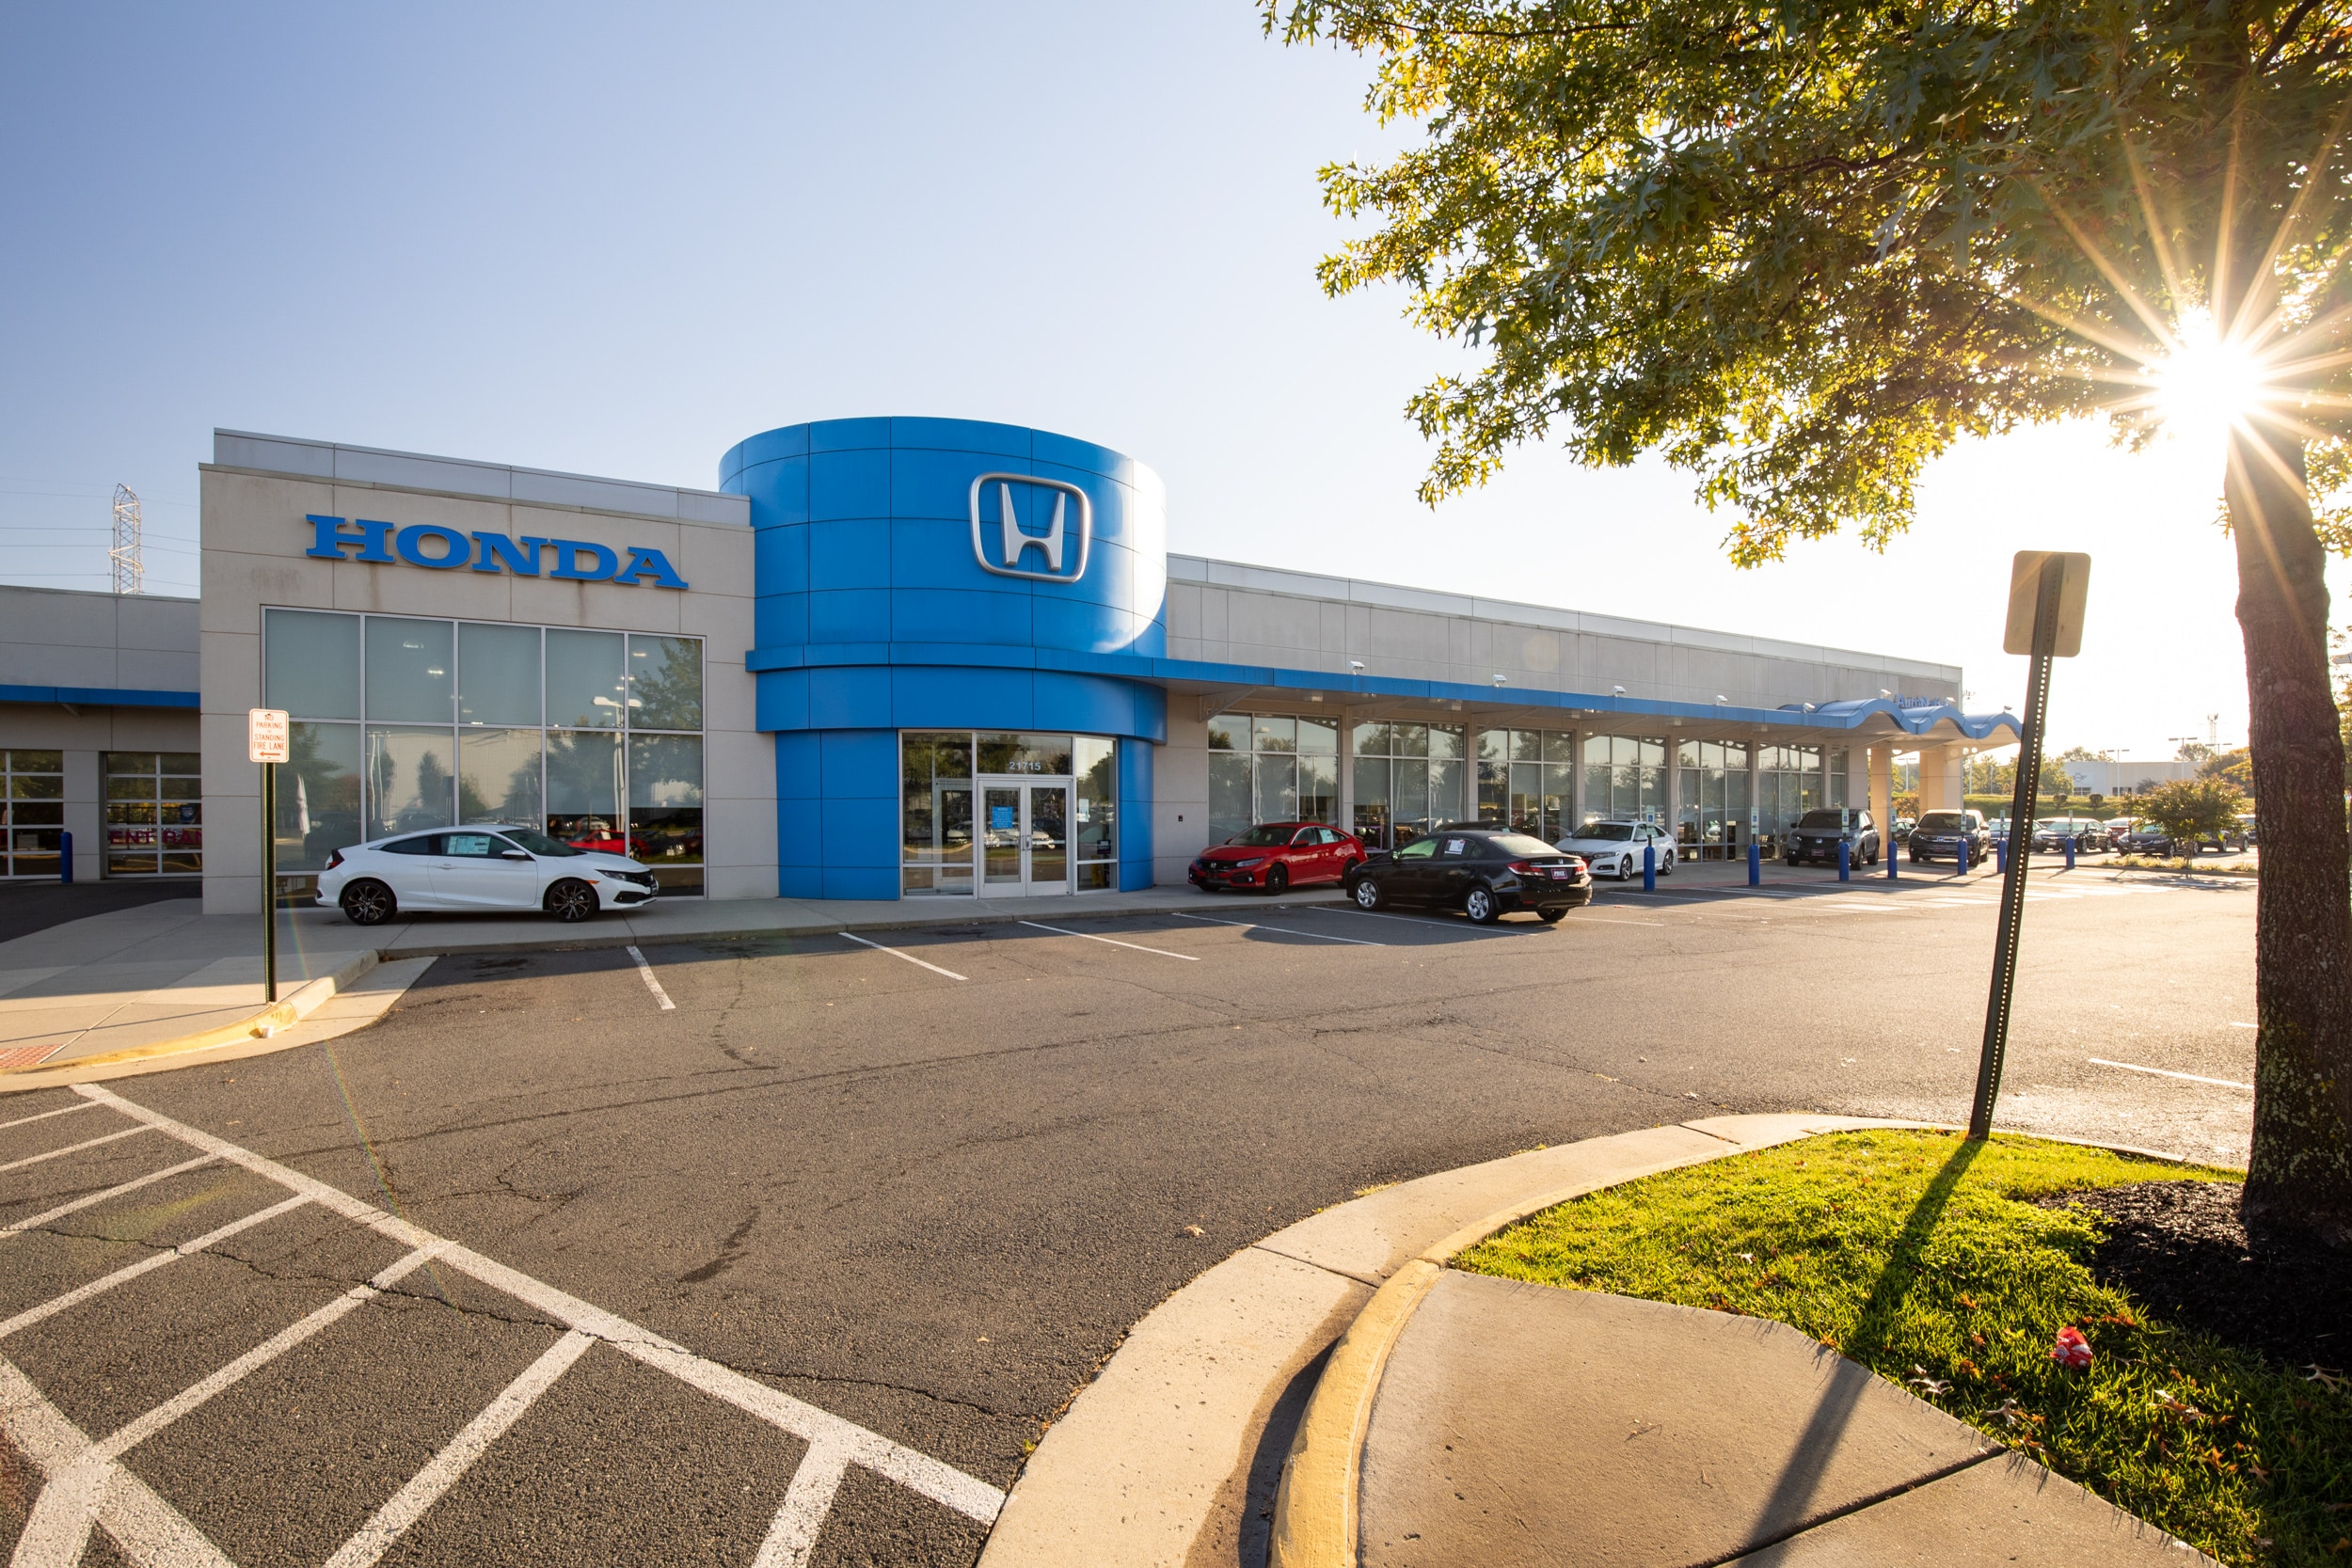 AutoNation Honda Dulles offers Honda sales, service, and parts in Sterling